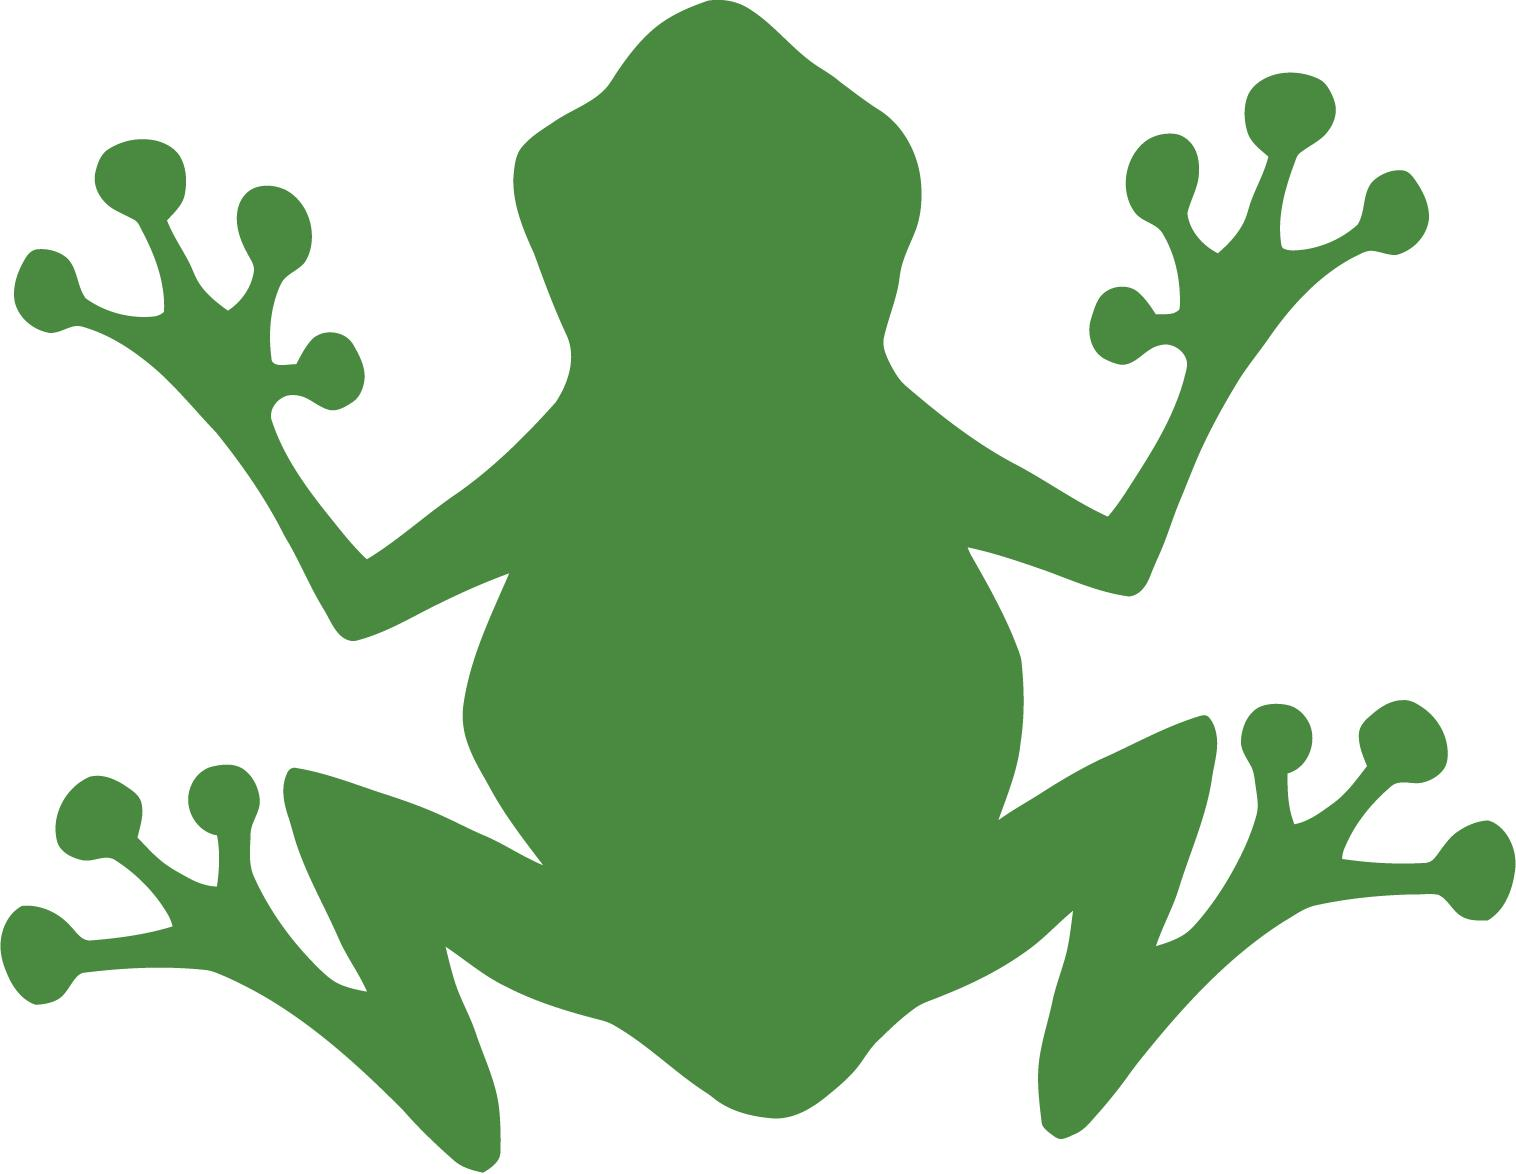 Red Frog Beach Island Resort Logo: Jumping Frog Cartoon